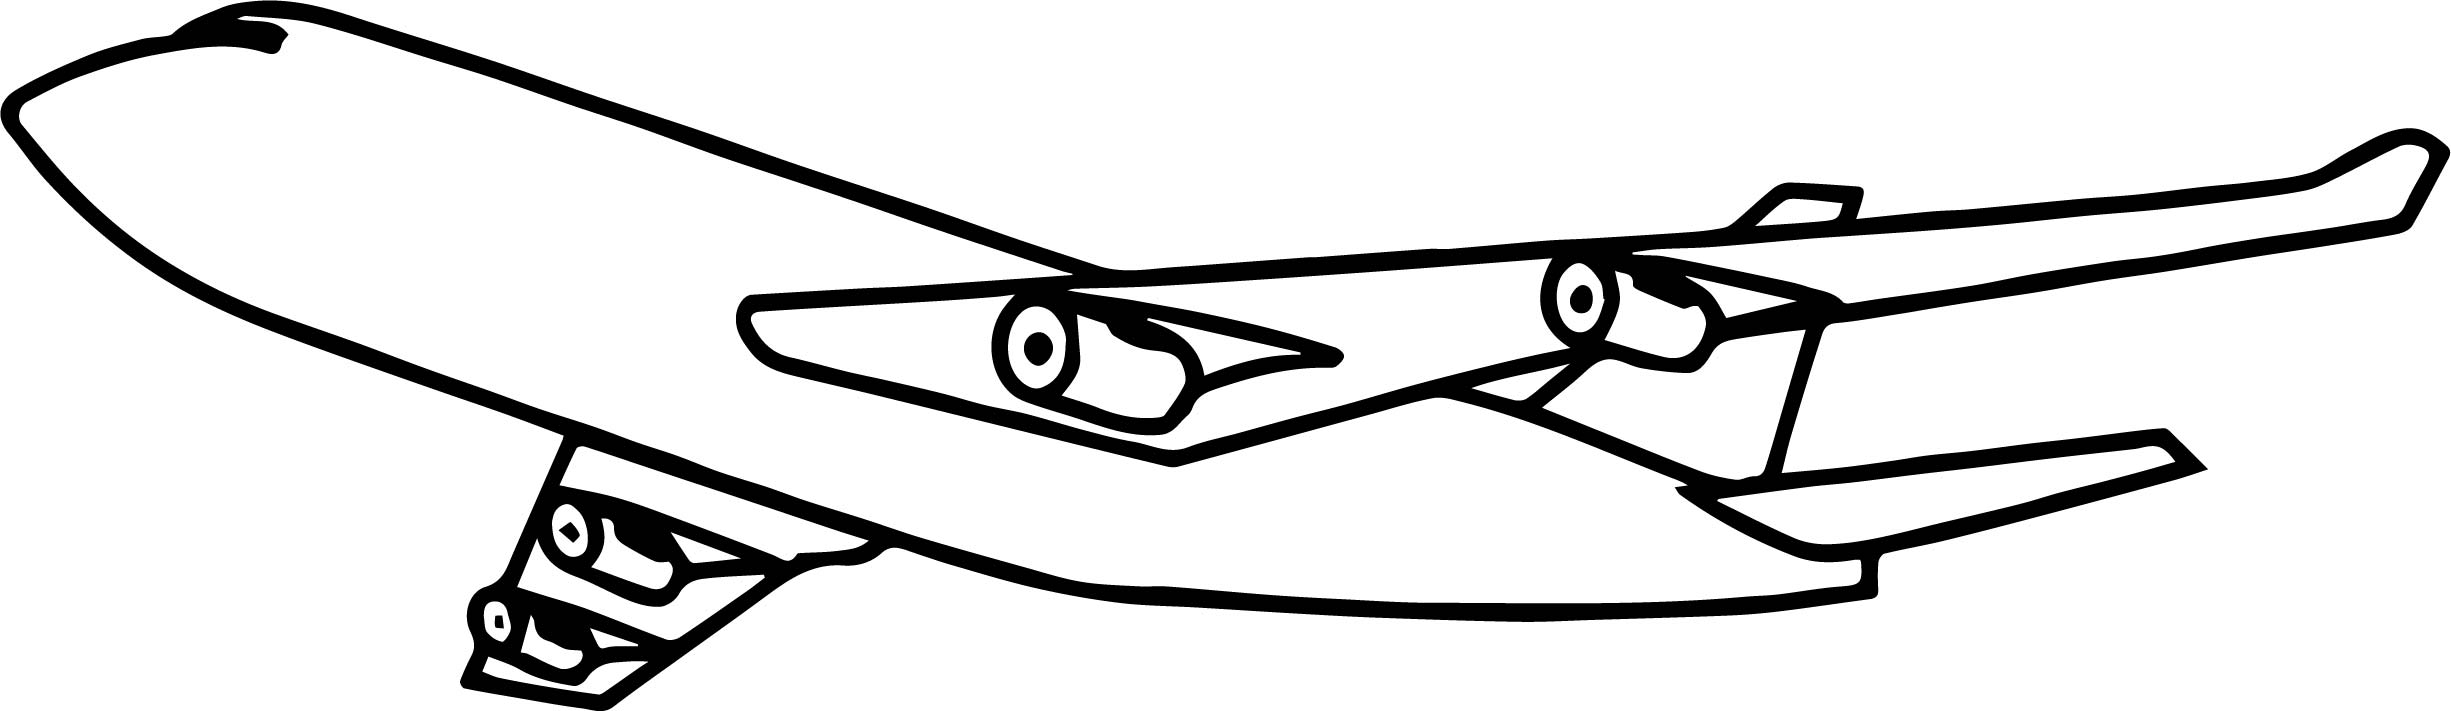 Plane Outline Drawing at GetDrawings